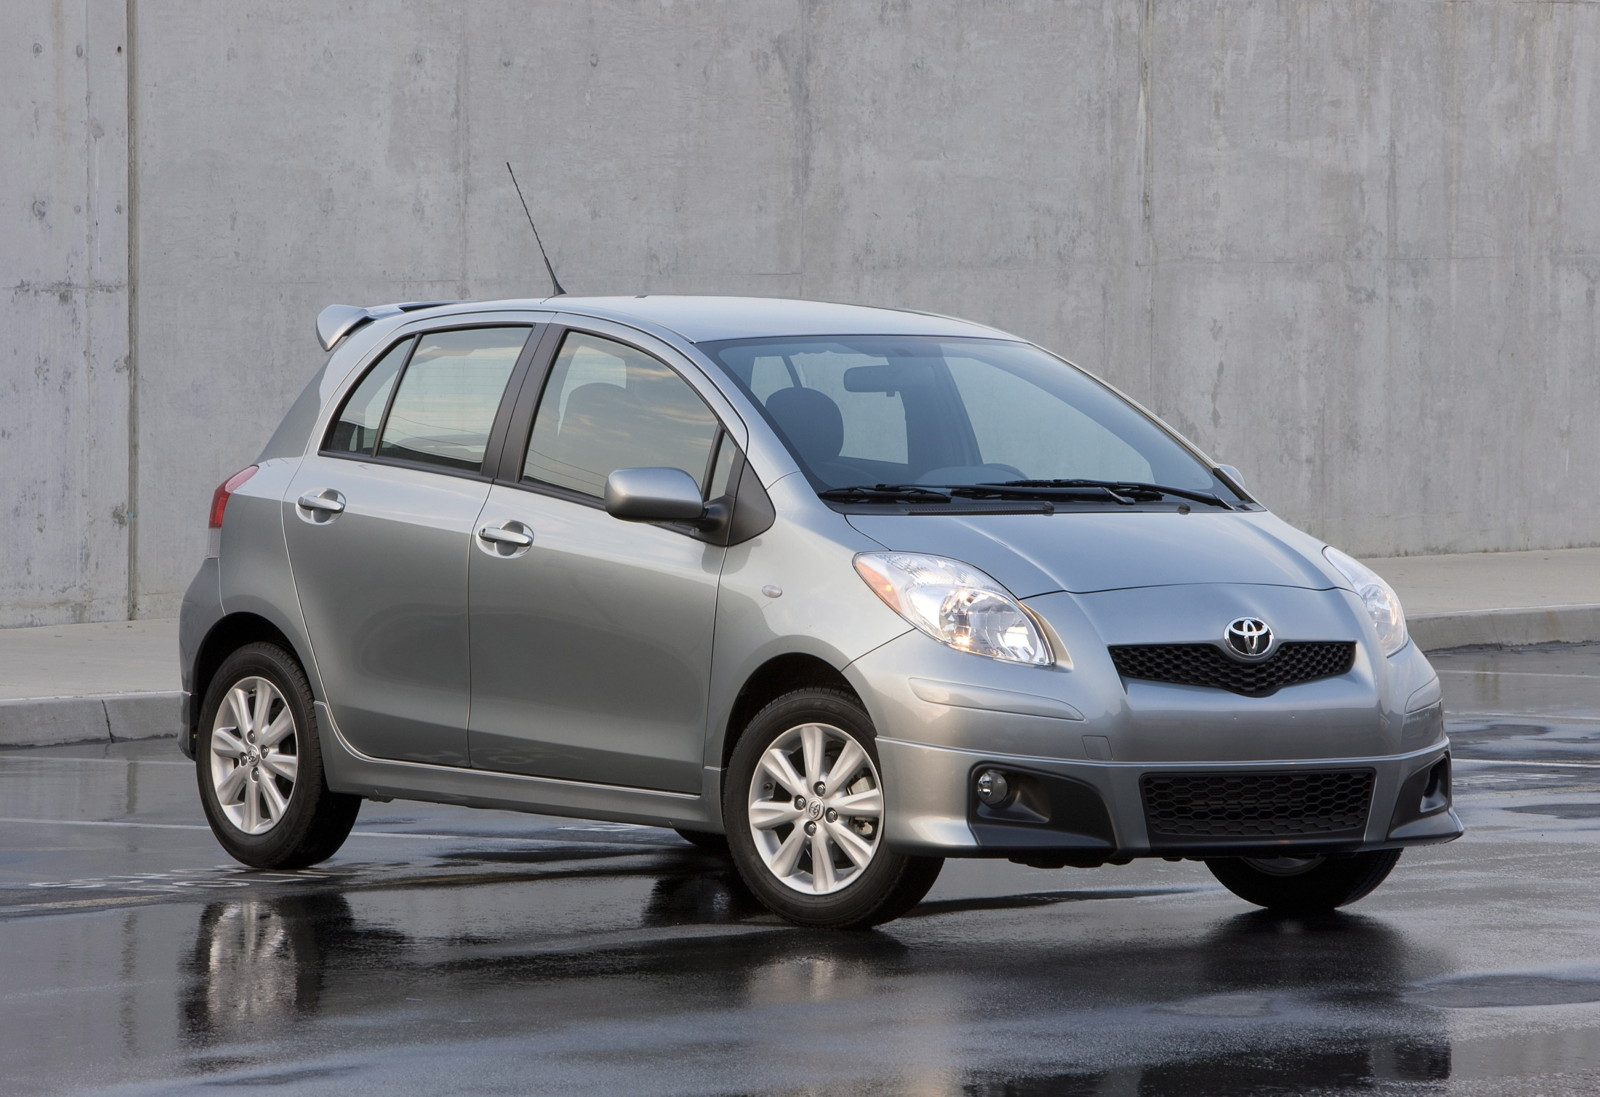 2010 Toyota Yaris Review Ratings Specs Prices And